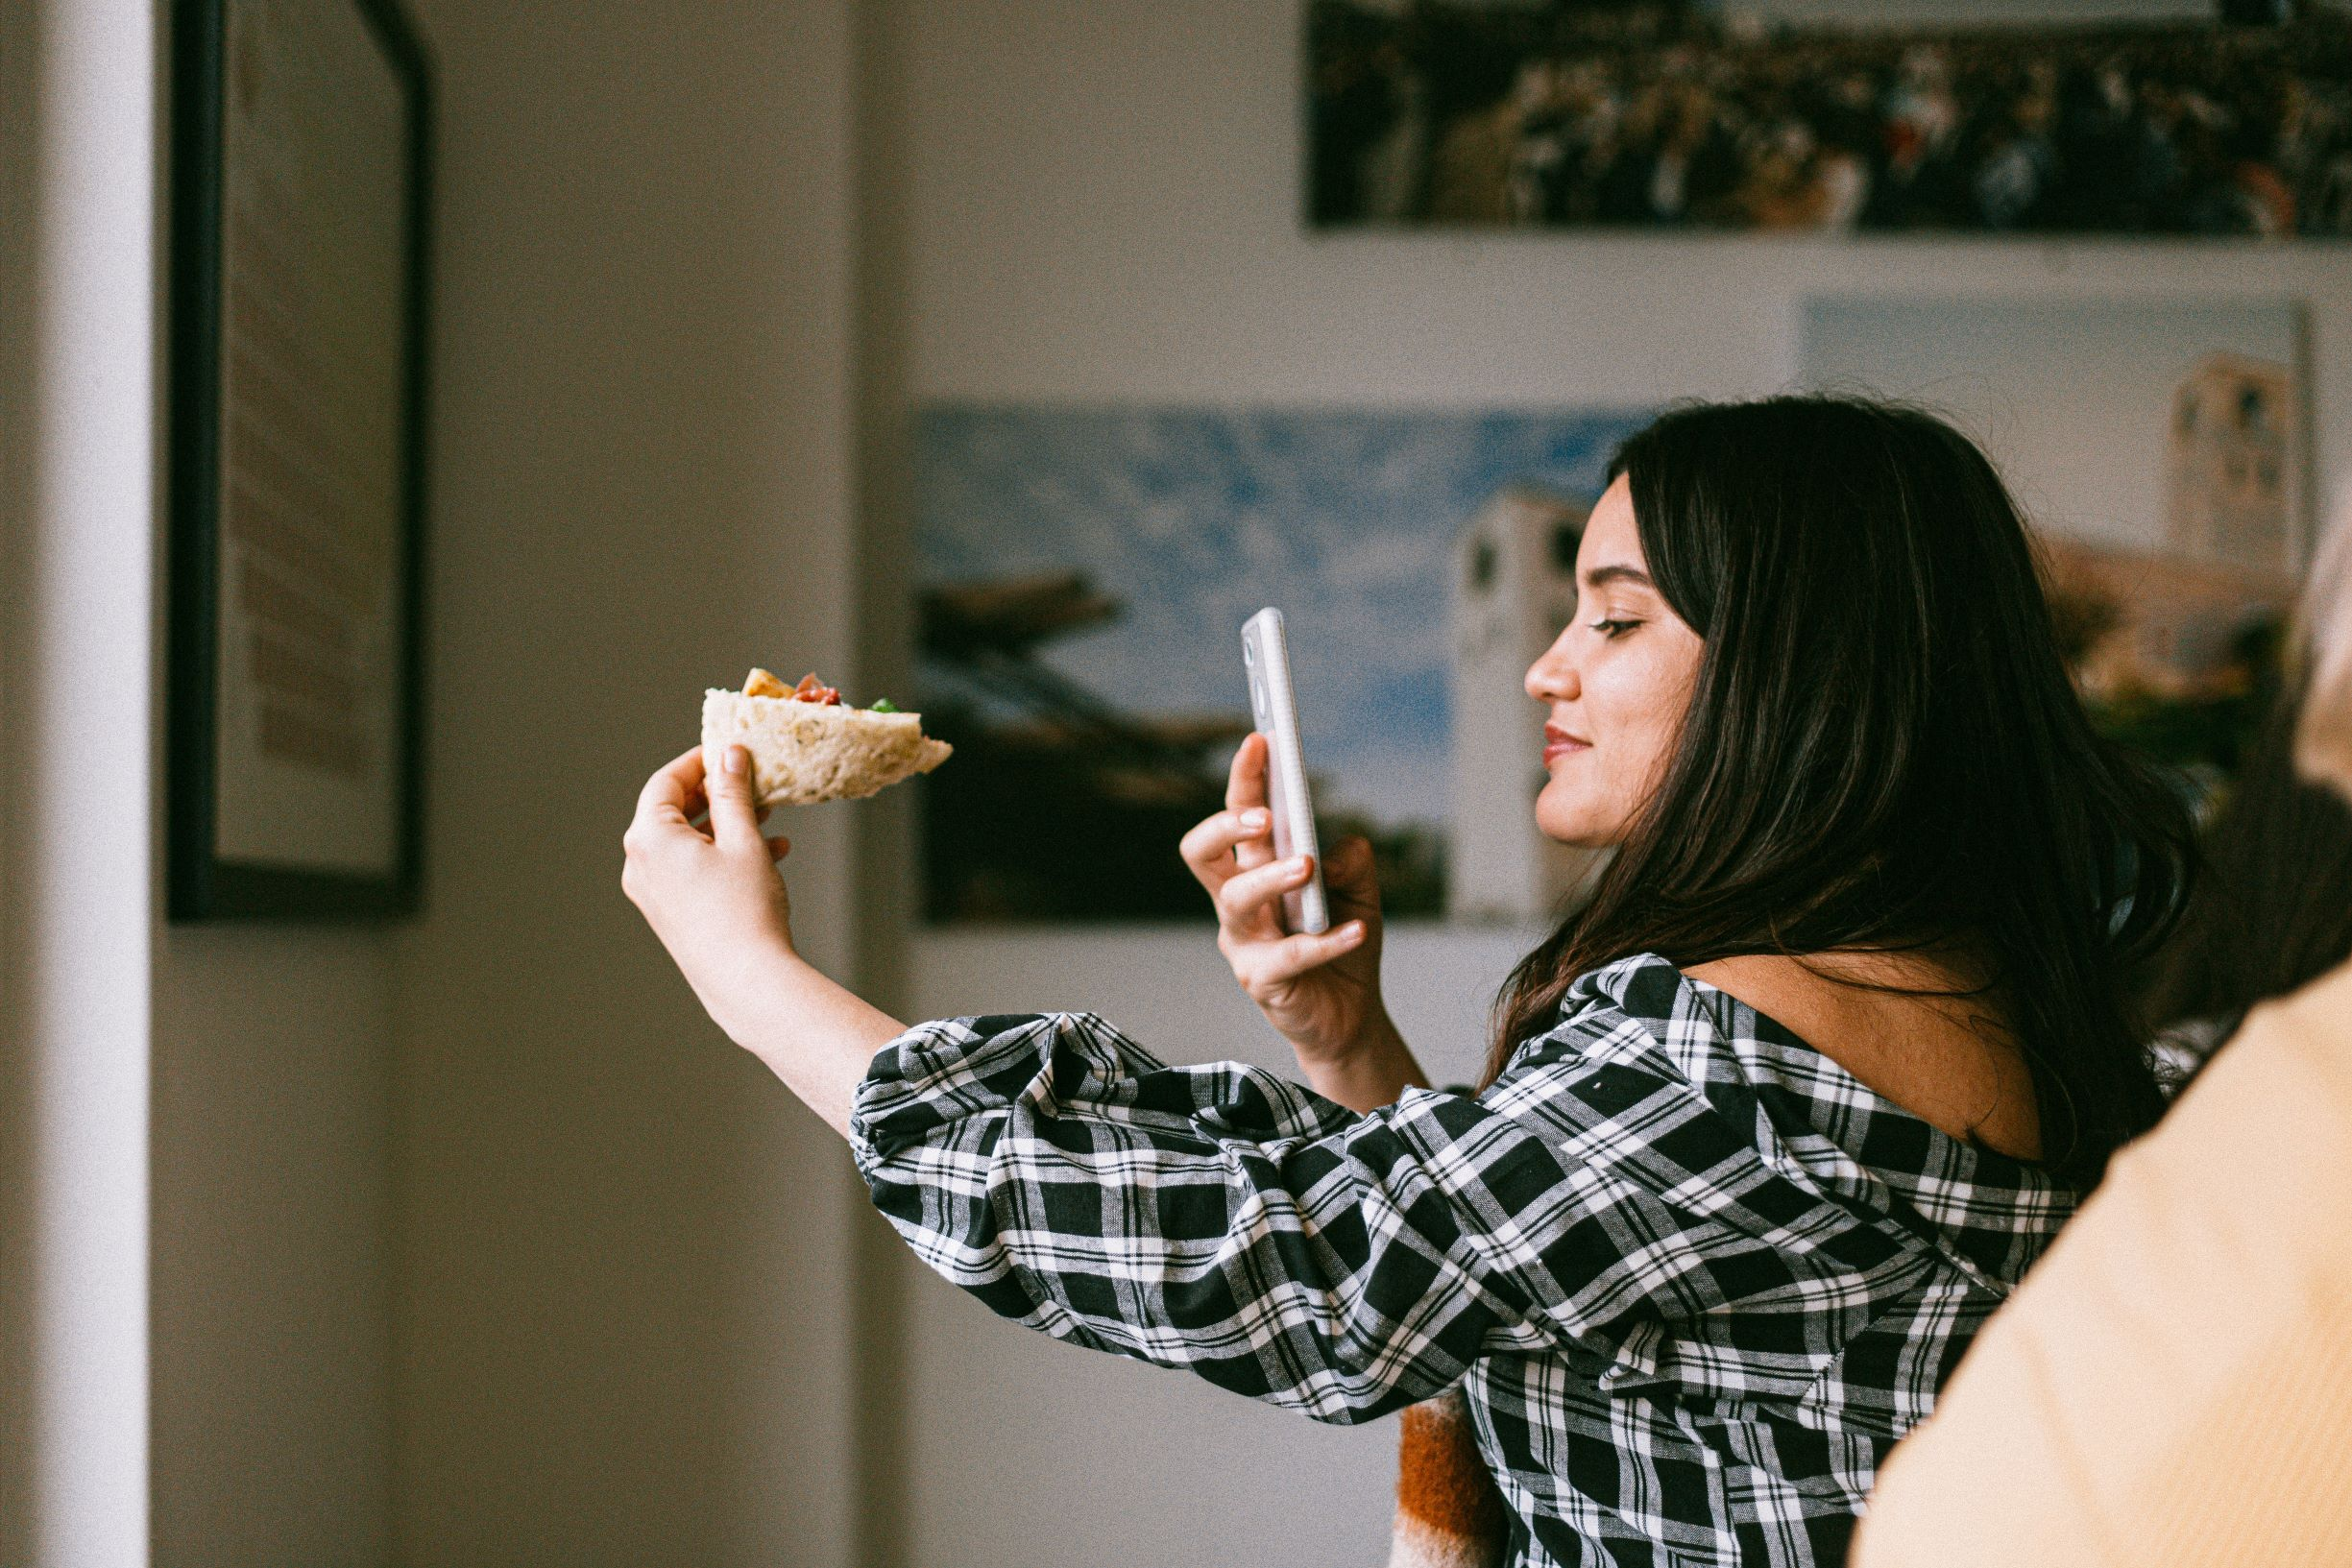 woman taking a photo of pizzza